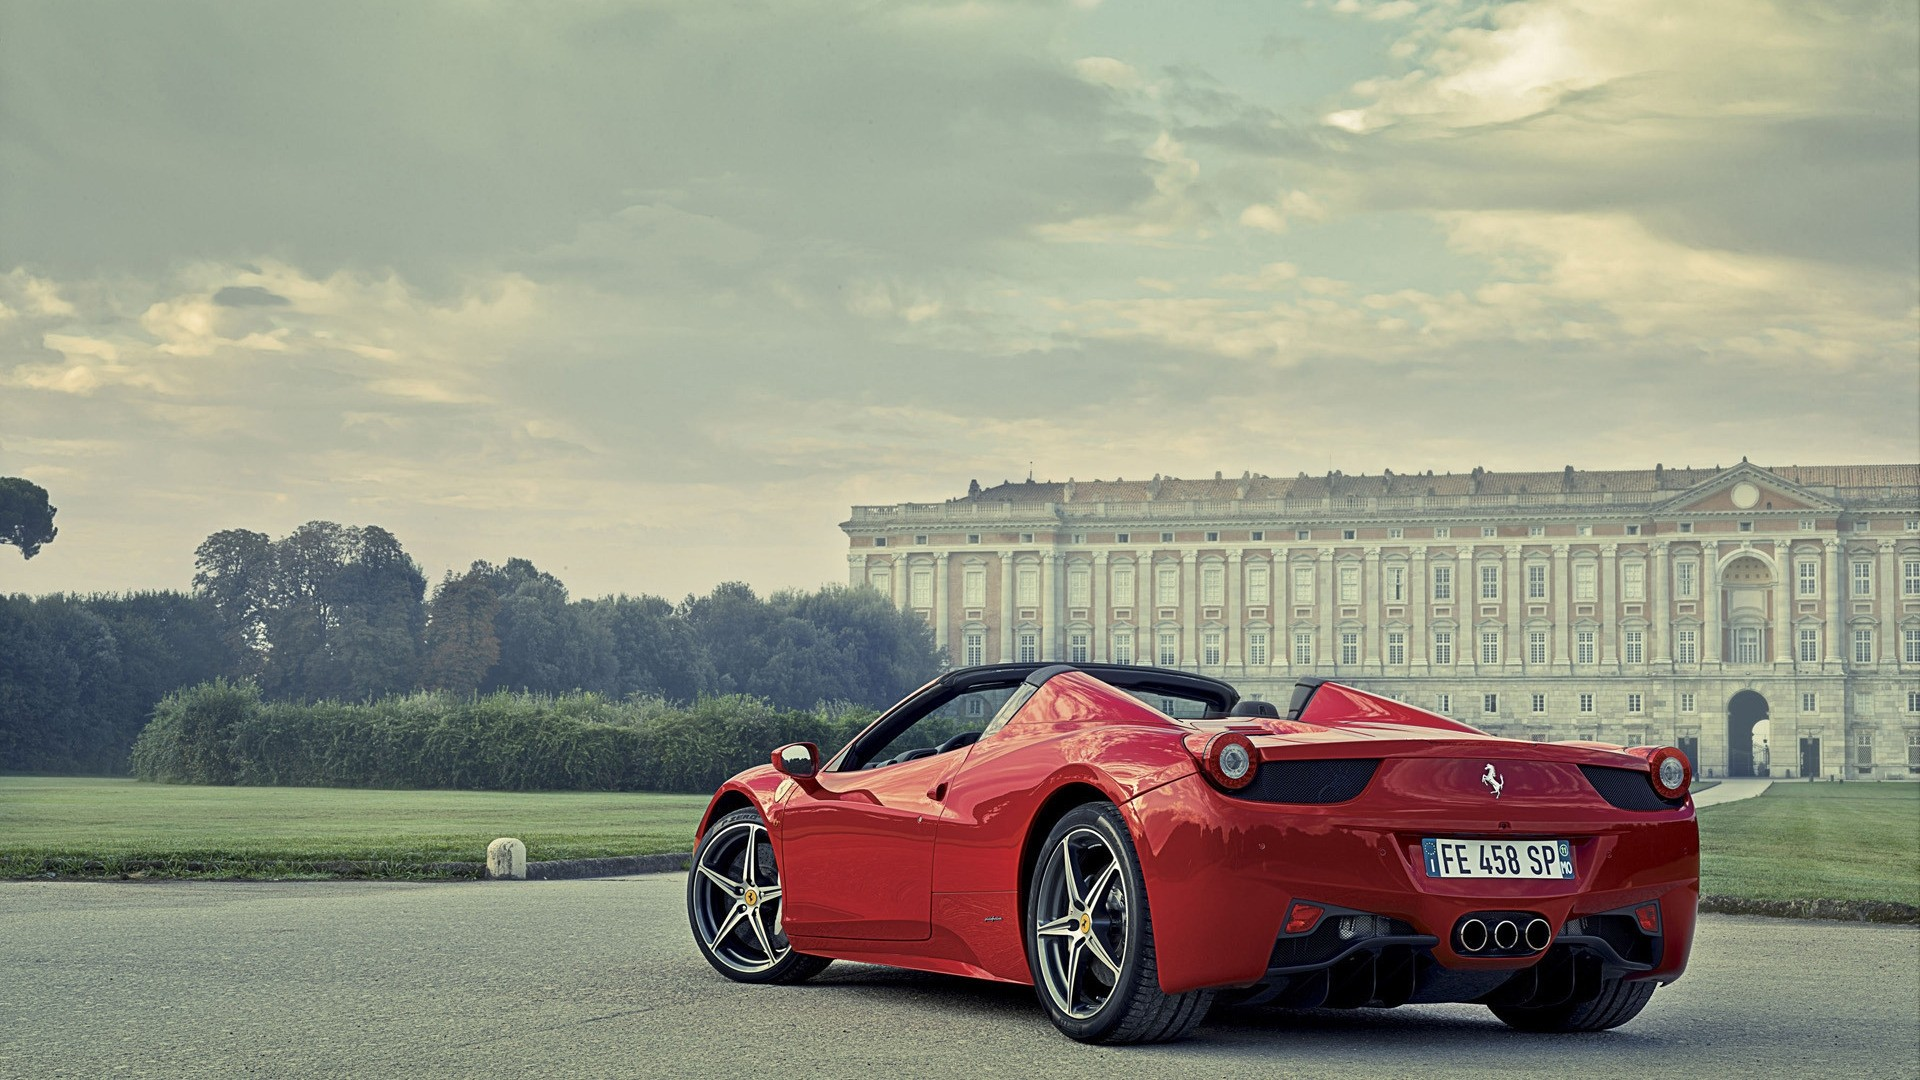 1920x1080 - Ferrari 458 Italia Wallpapers 16